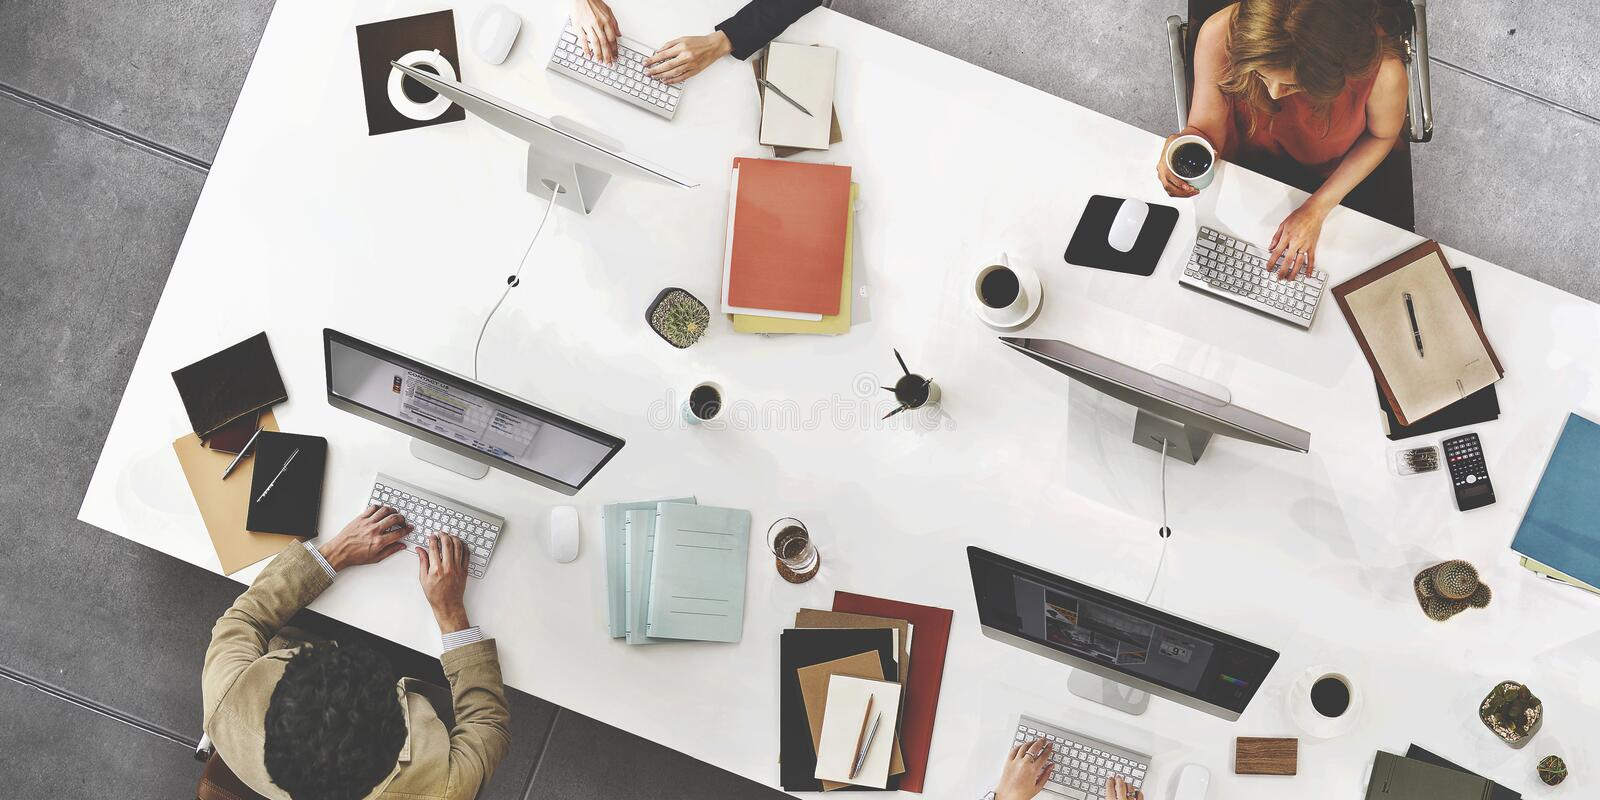 Business Team Meeting Connection Digital Technology Concept royalty free stock image